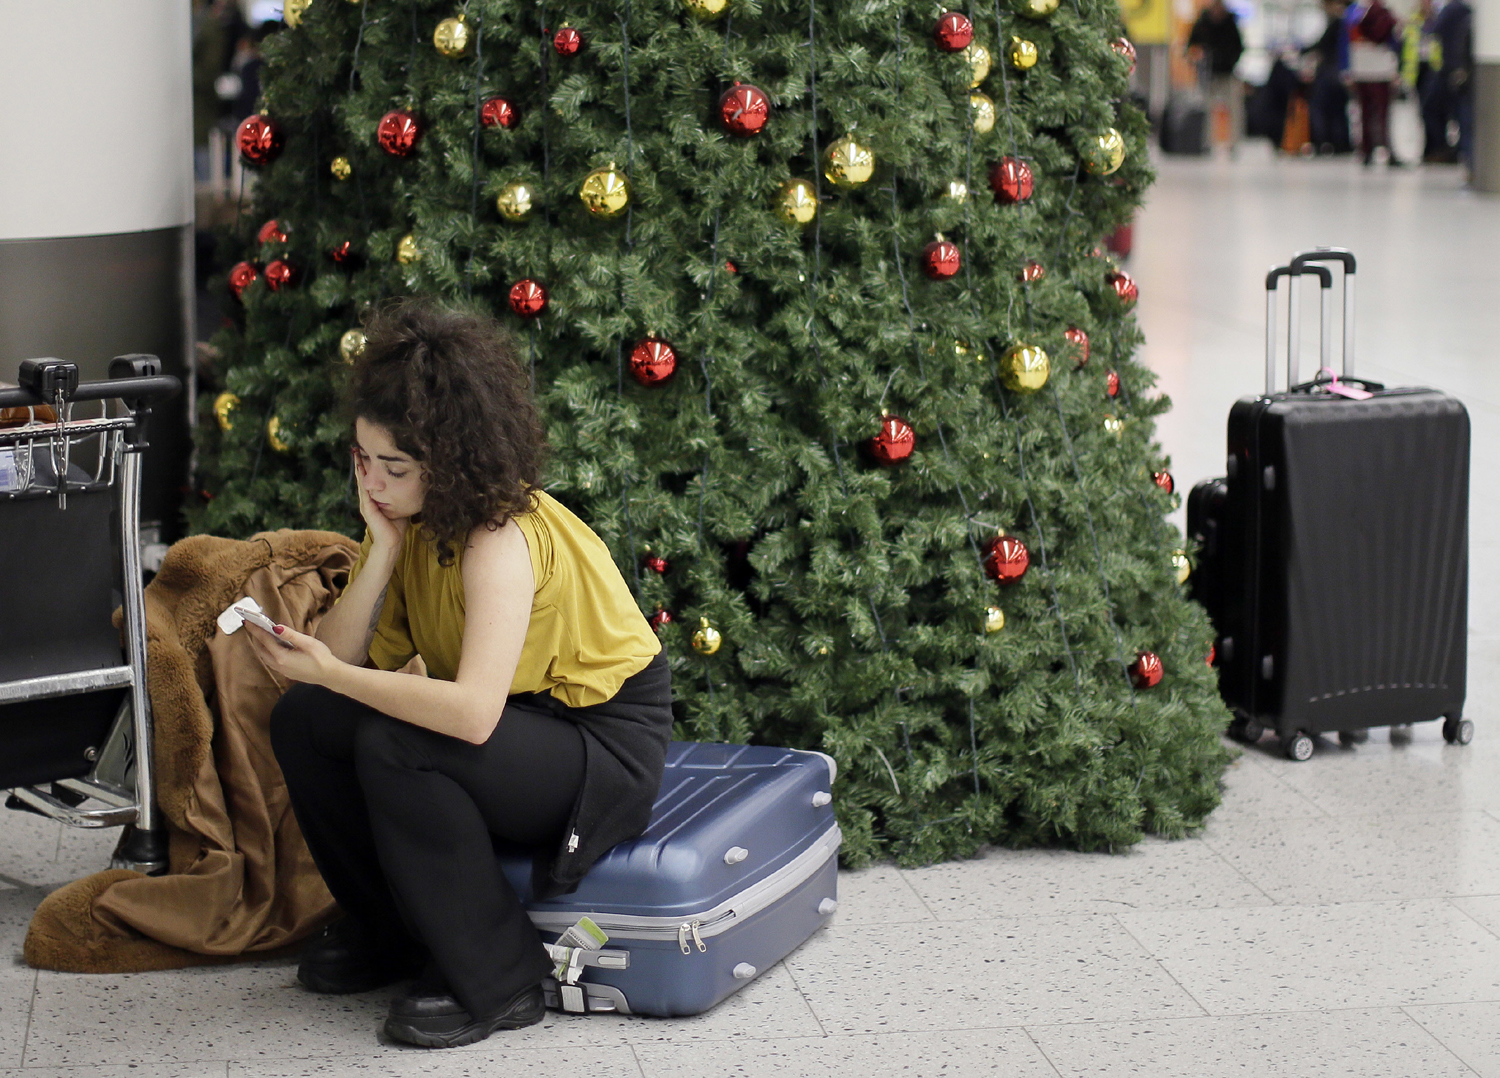 A woman waits in the departures area at Gatwick airport, near London, as the airport remains closed with incoming flights delayed or diverted to other airports, after drones were spotted over the airfield last night and this morning, Thursday, Dec. 20, 2018.[Photo: AP/Tim Ireland]